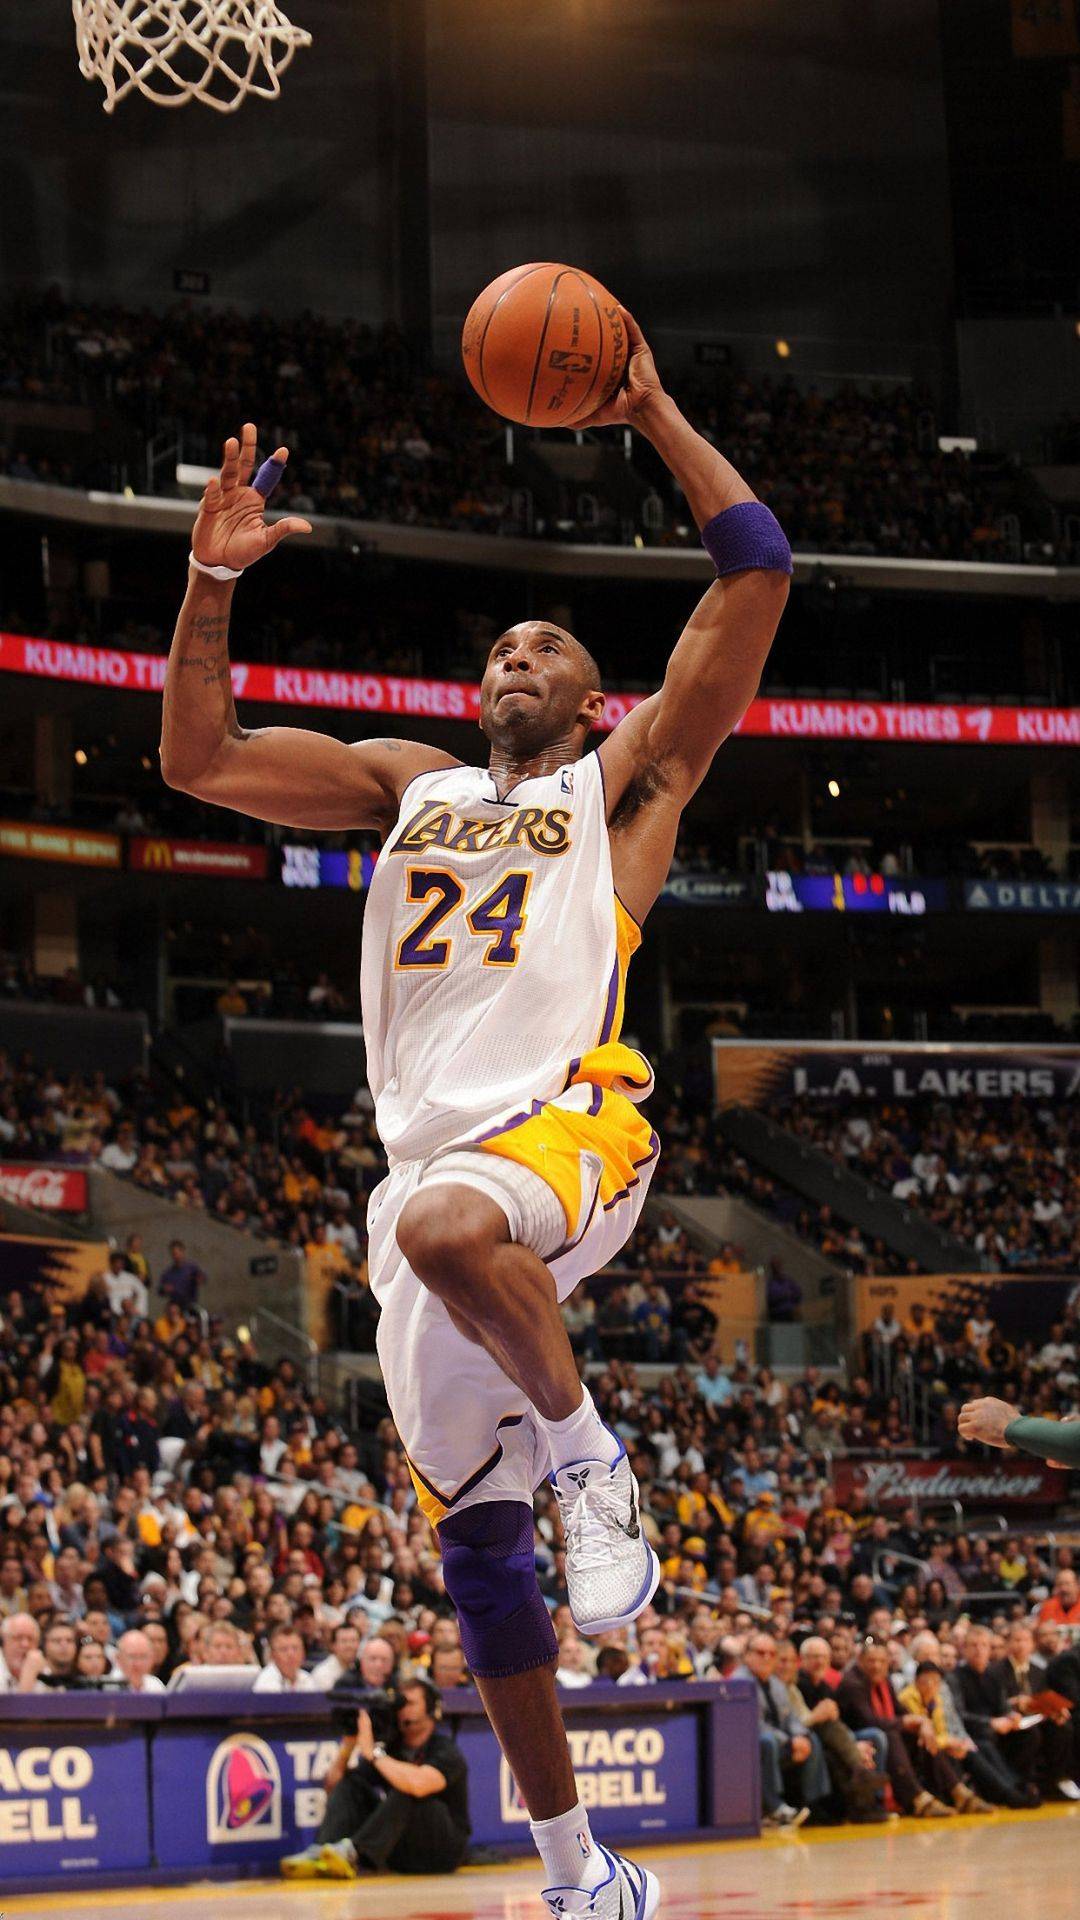 La Lakers, Wnba, Kobe Bryant, Los Angeles Lakers, Superstar